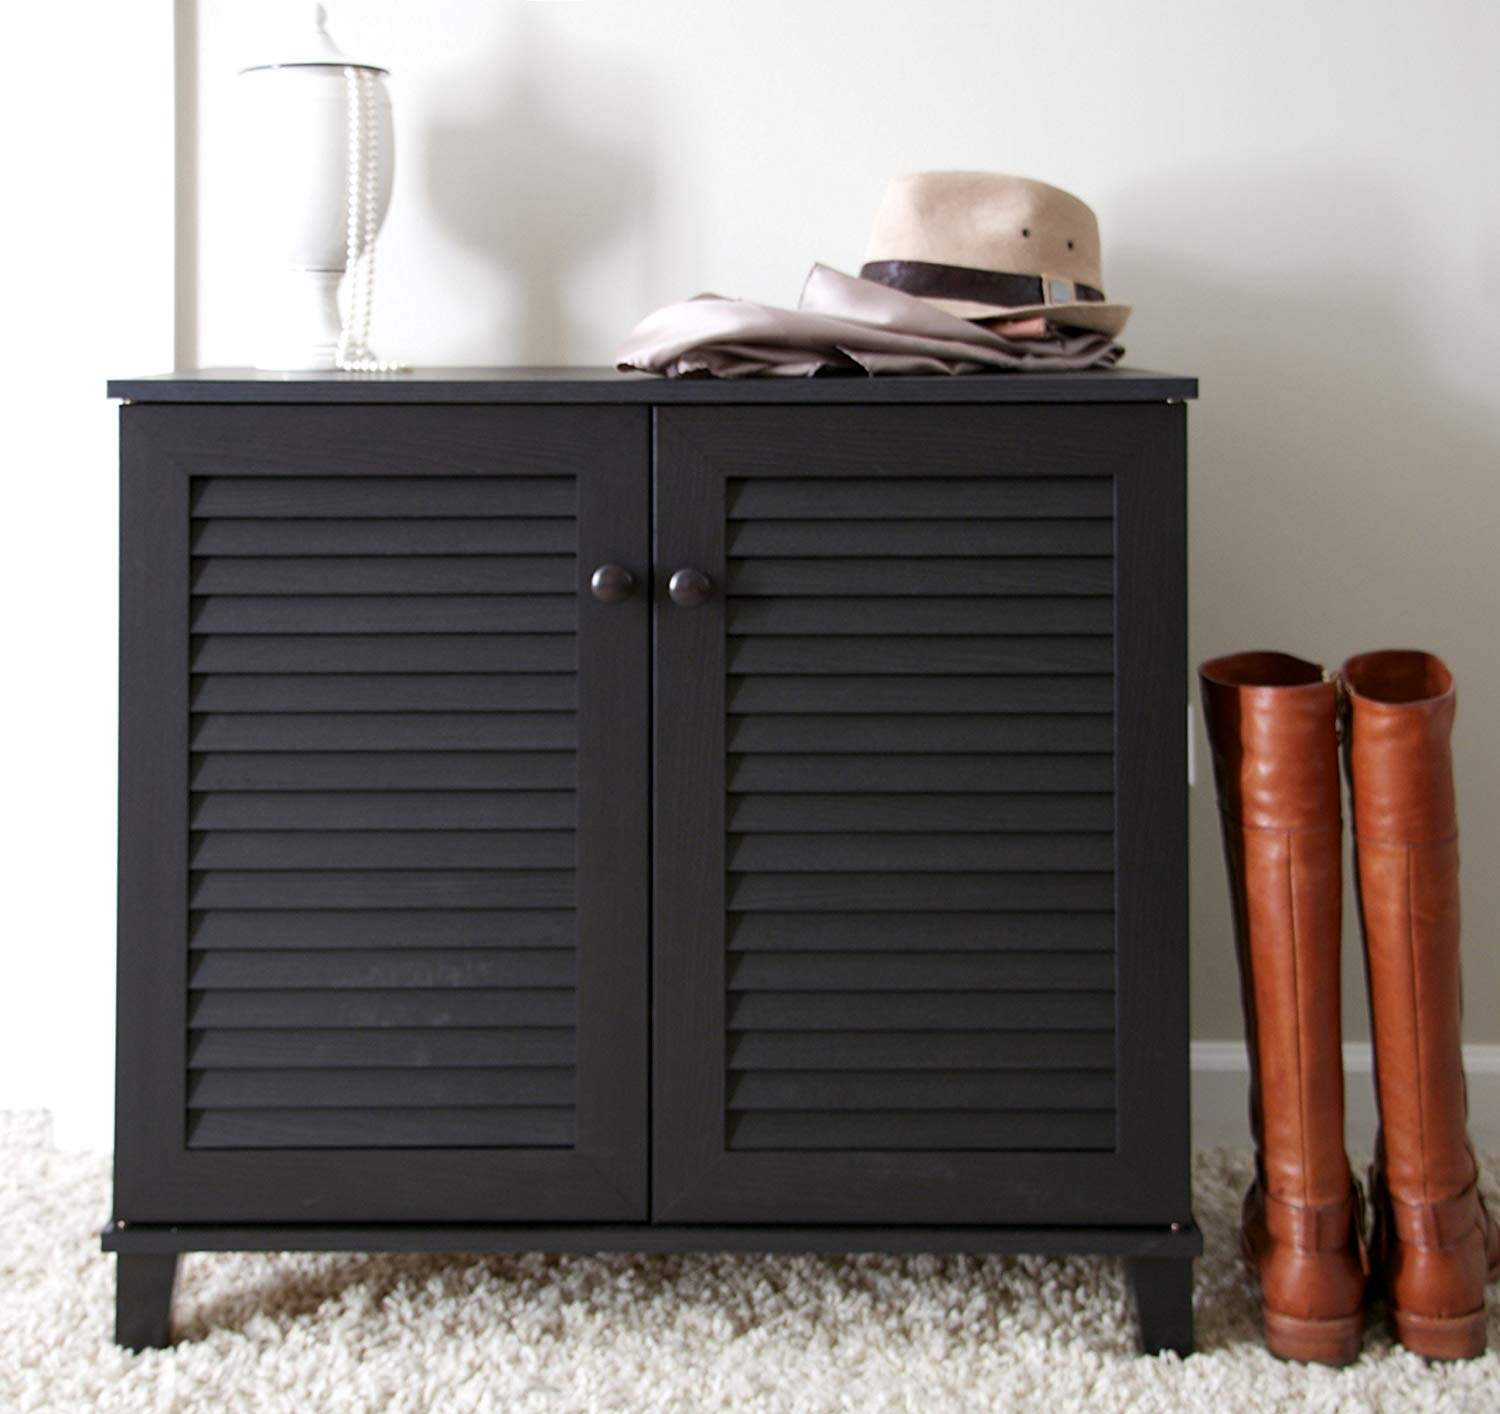 Baxton Studio Coolidge Shoe-Storage Cabinet